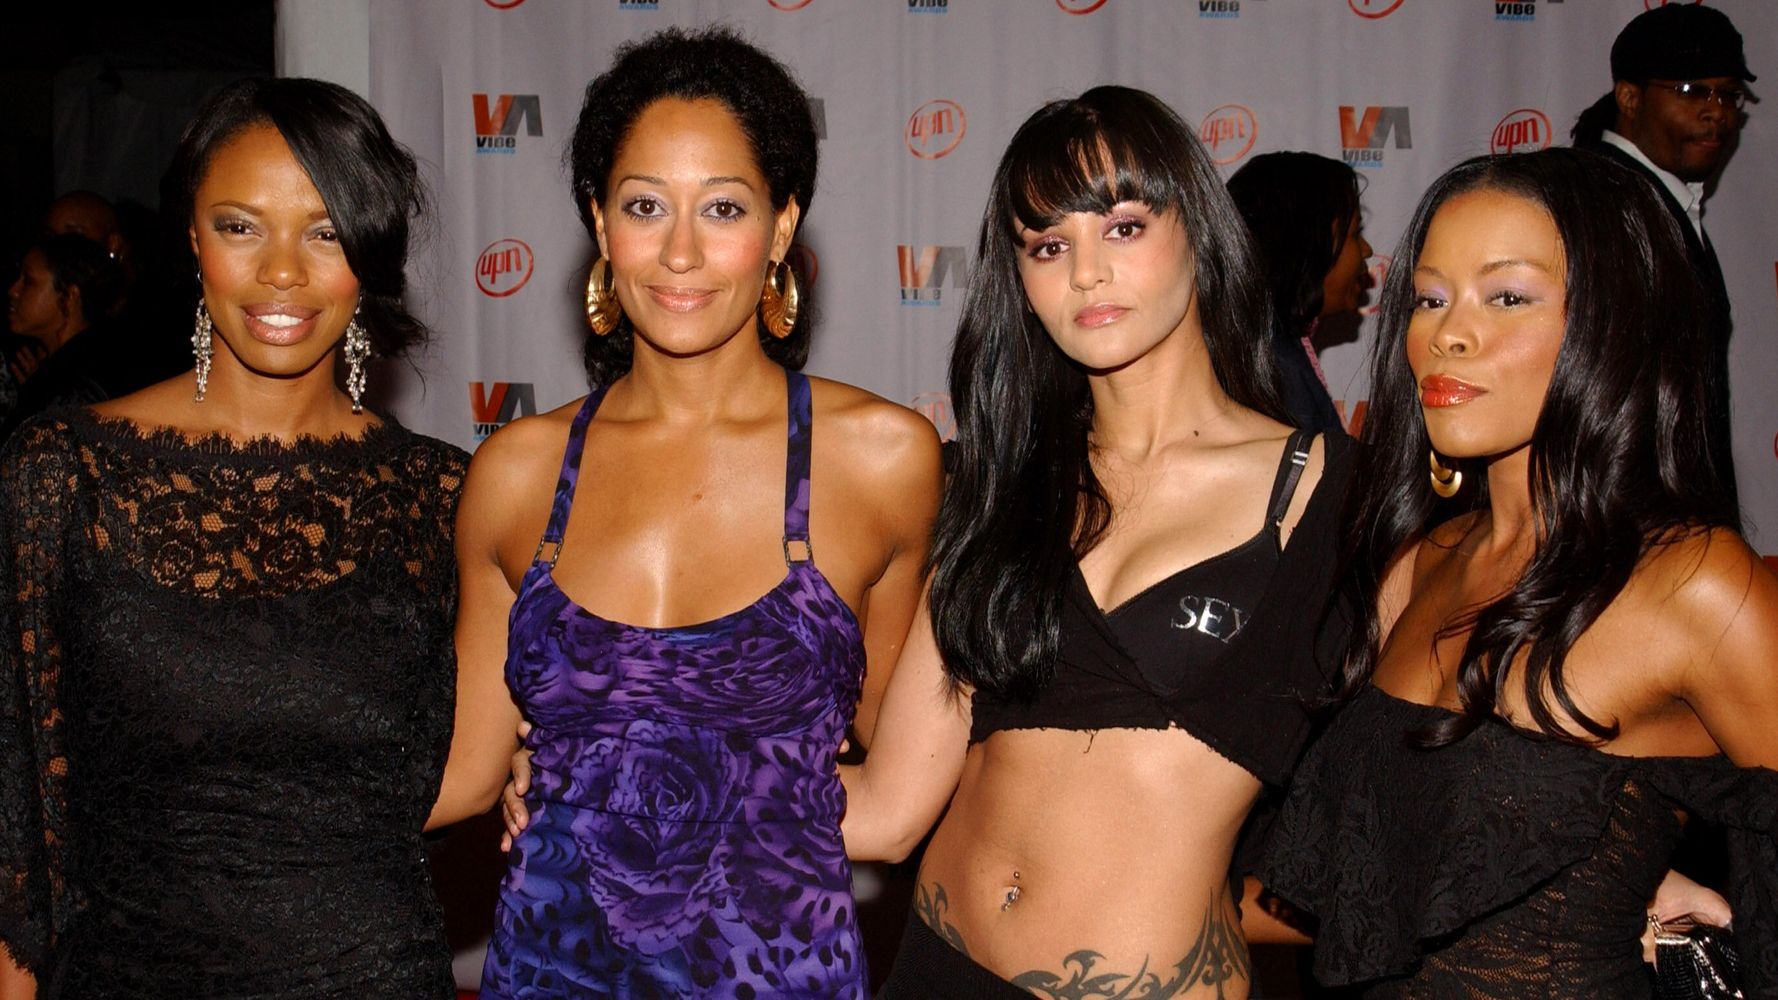 Westlake Legal Group 5d7a8da63b0000039fd1a8e2 Tracee Ellis Ross Shares Exciting News About A 'Girlfriends' Cast Reunion